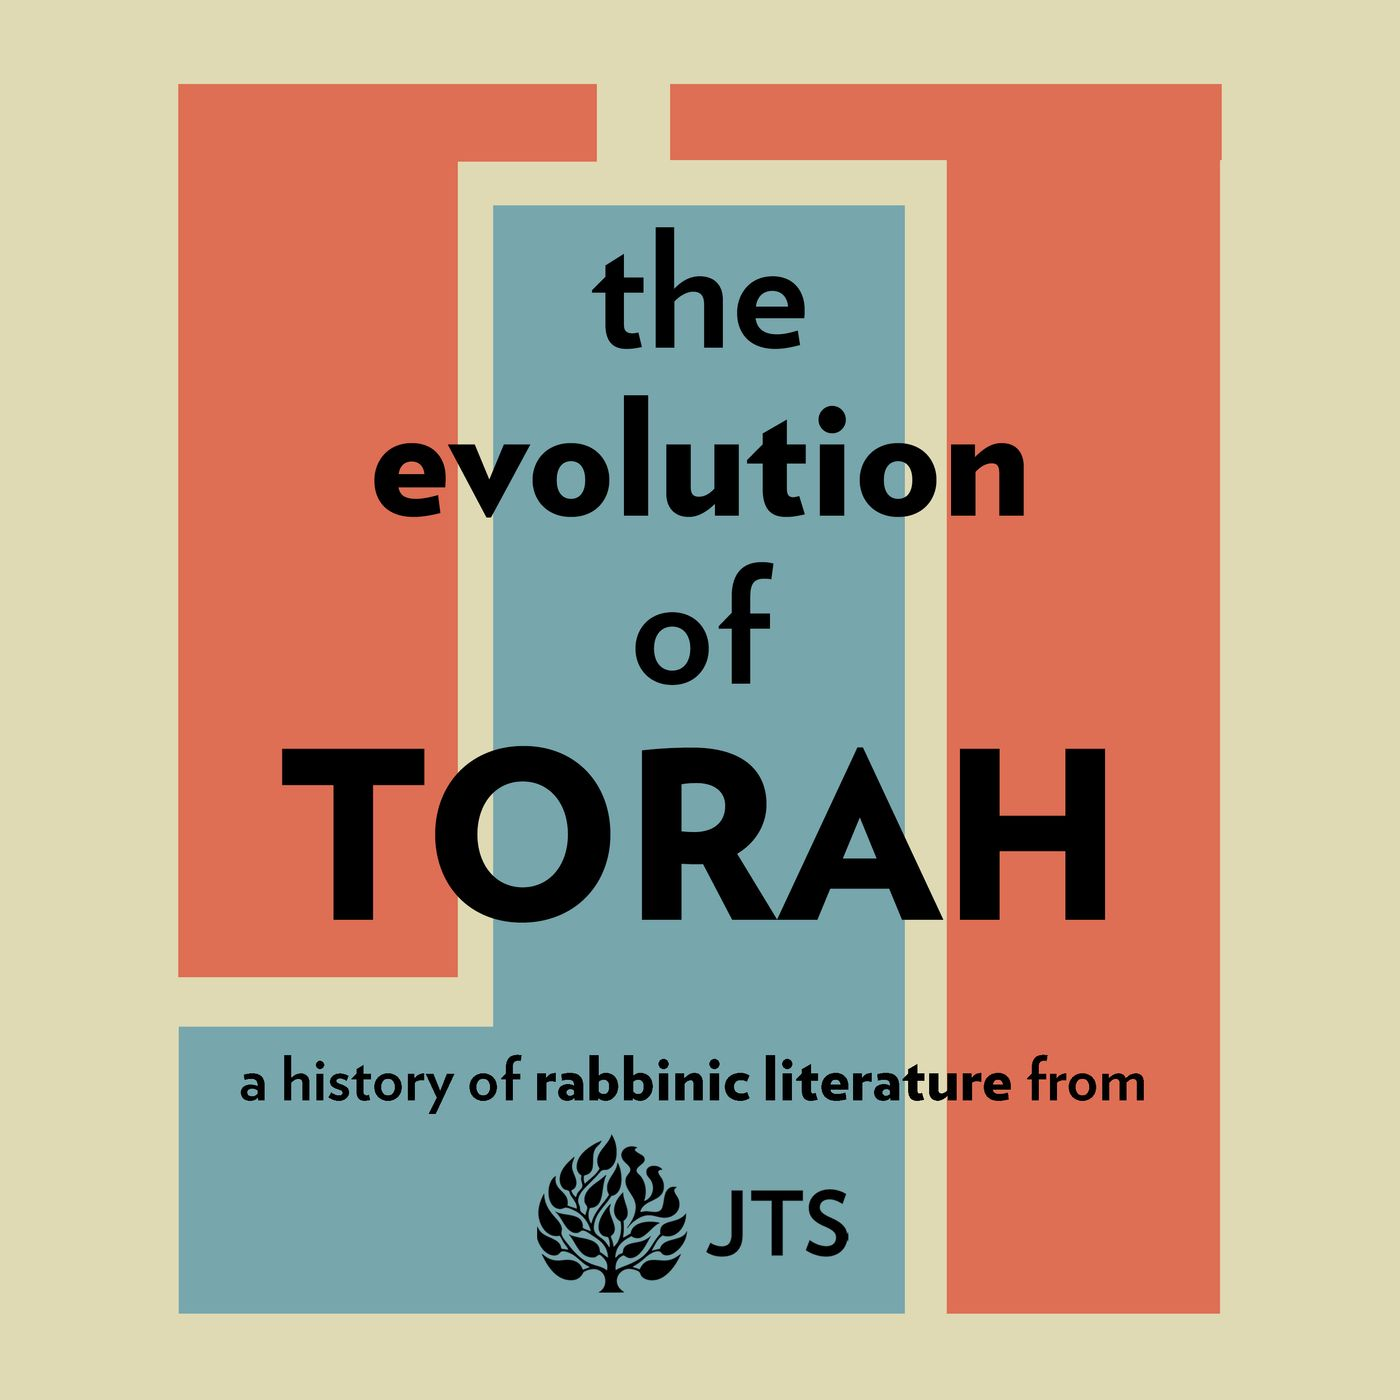 The Evolution of Torah: a history of rabbinic literature